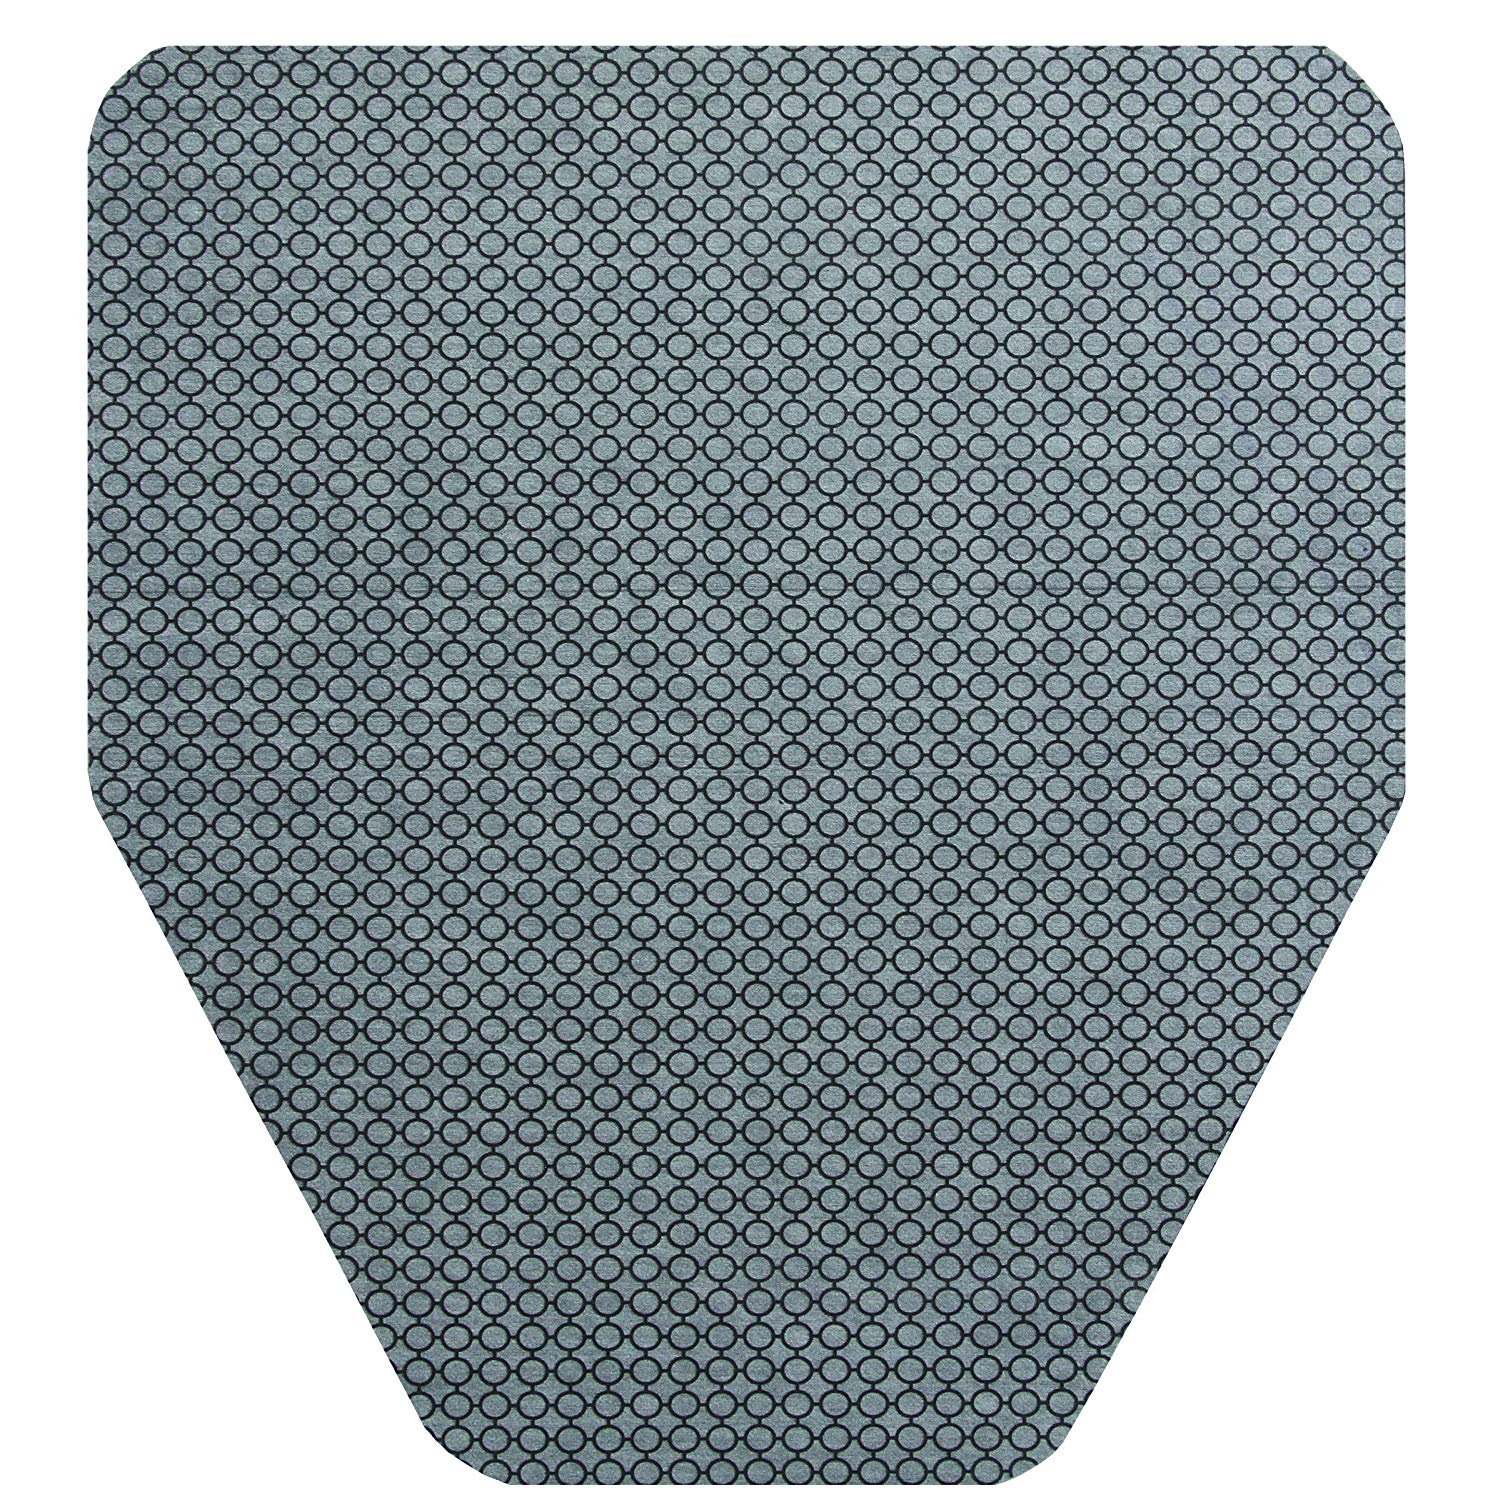 Urinal Mat - Polyester, Black/Grey